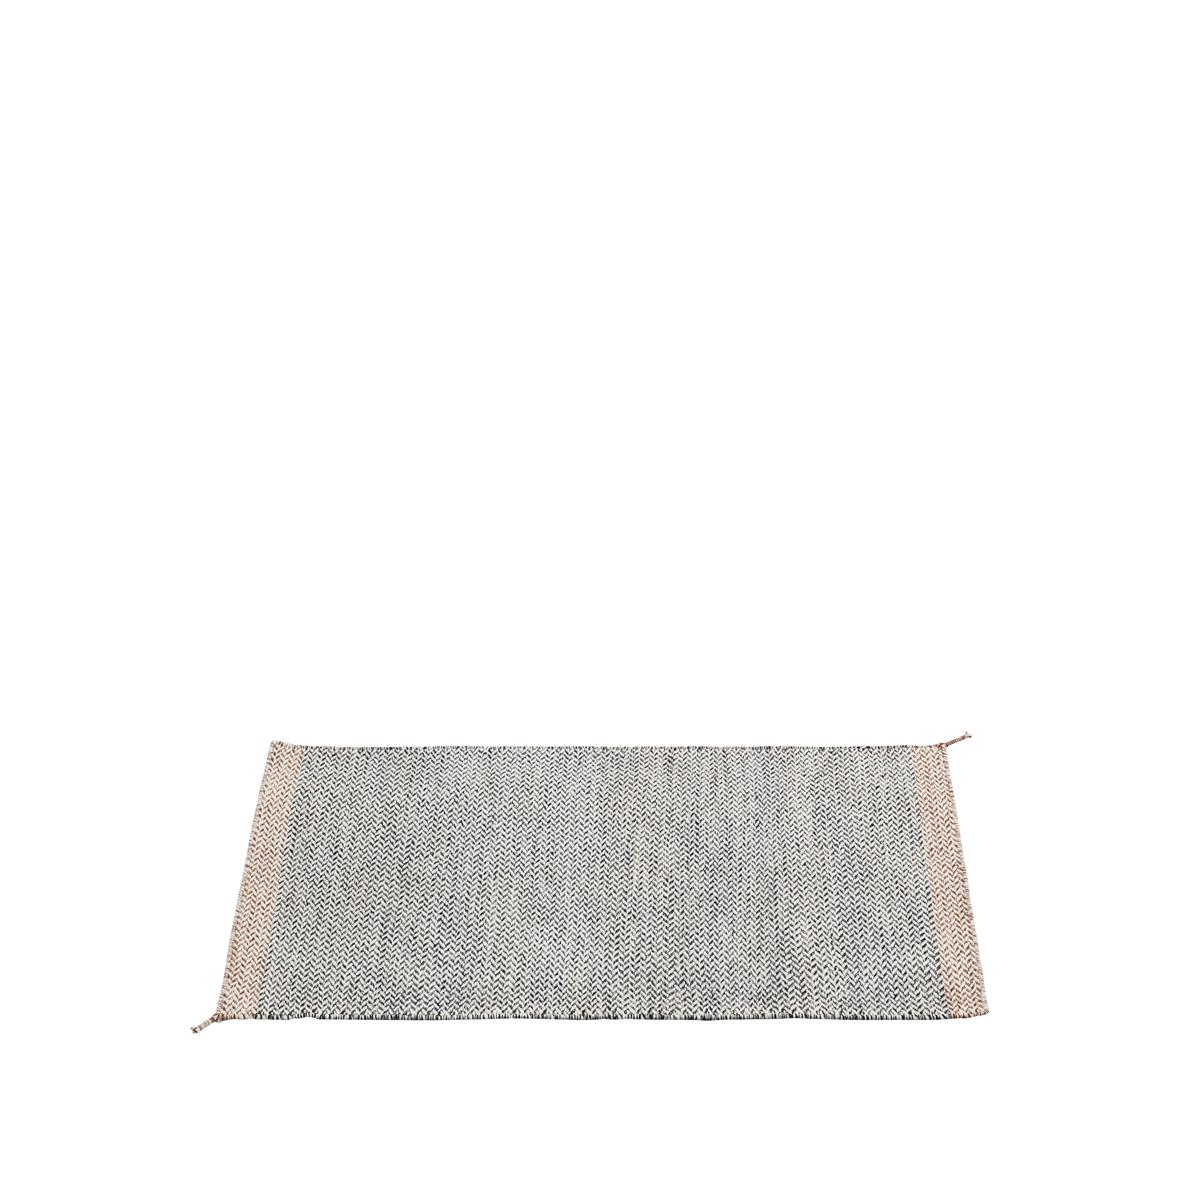 Ply Rug i 85 X 140 cm, Black-White